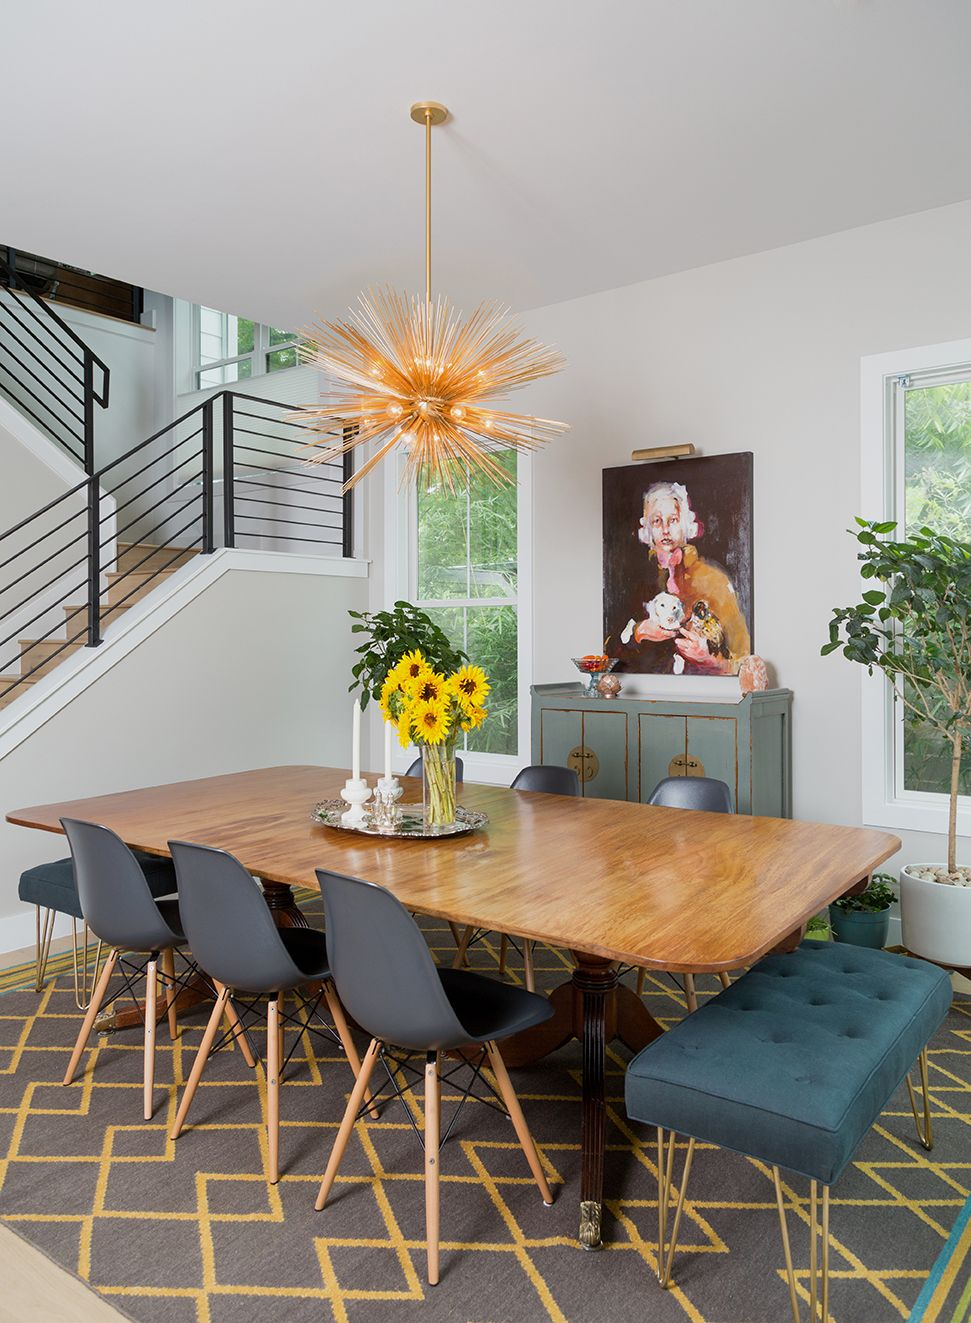 An antique mahogany dining table and a kelly wearstler chandelier play well together in this south austin dining room